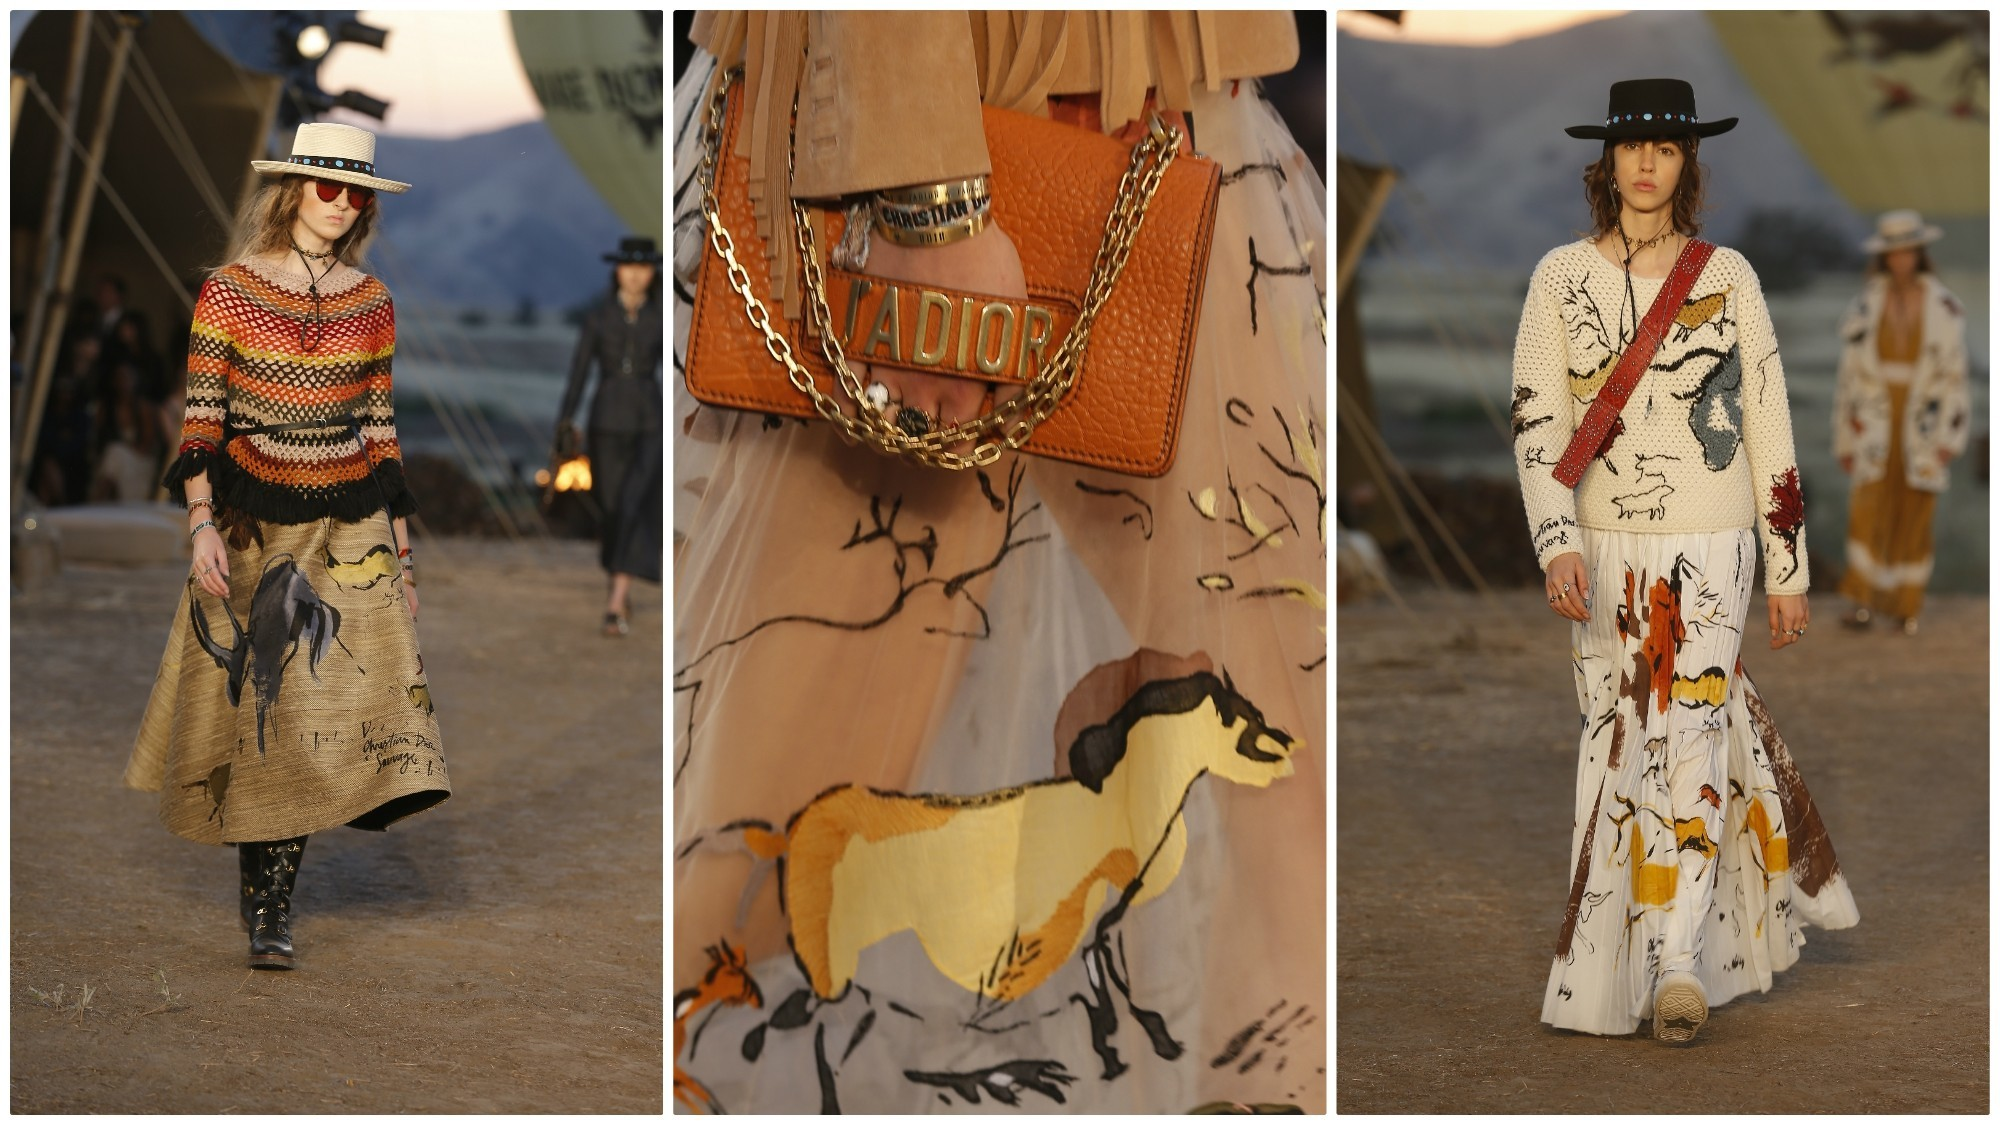 Graphics in Dior's 2018 cruise collection were inspired by the Lascaux cave paintings.